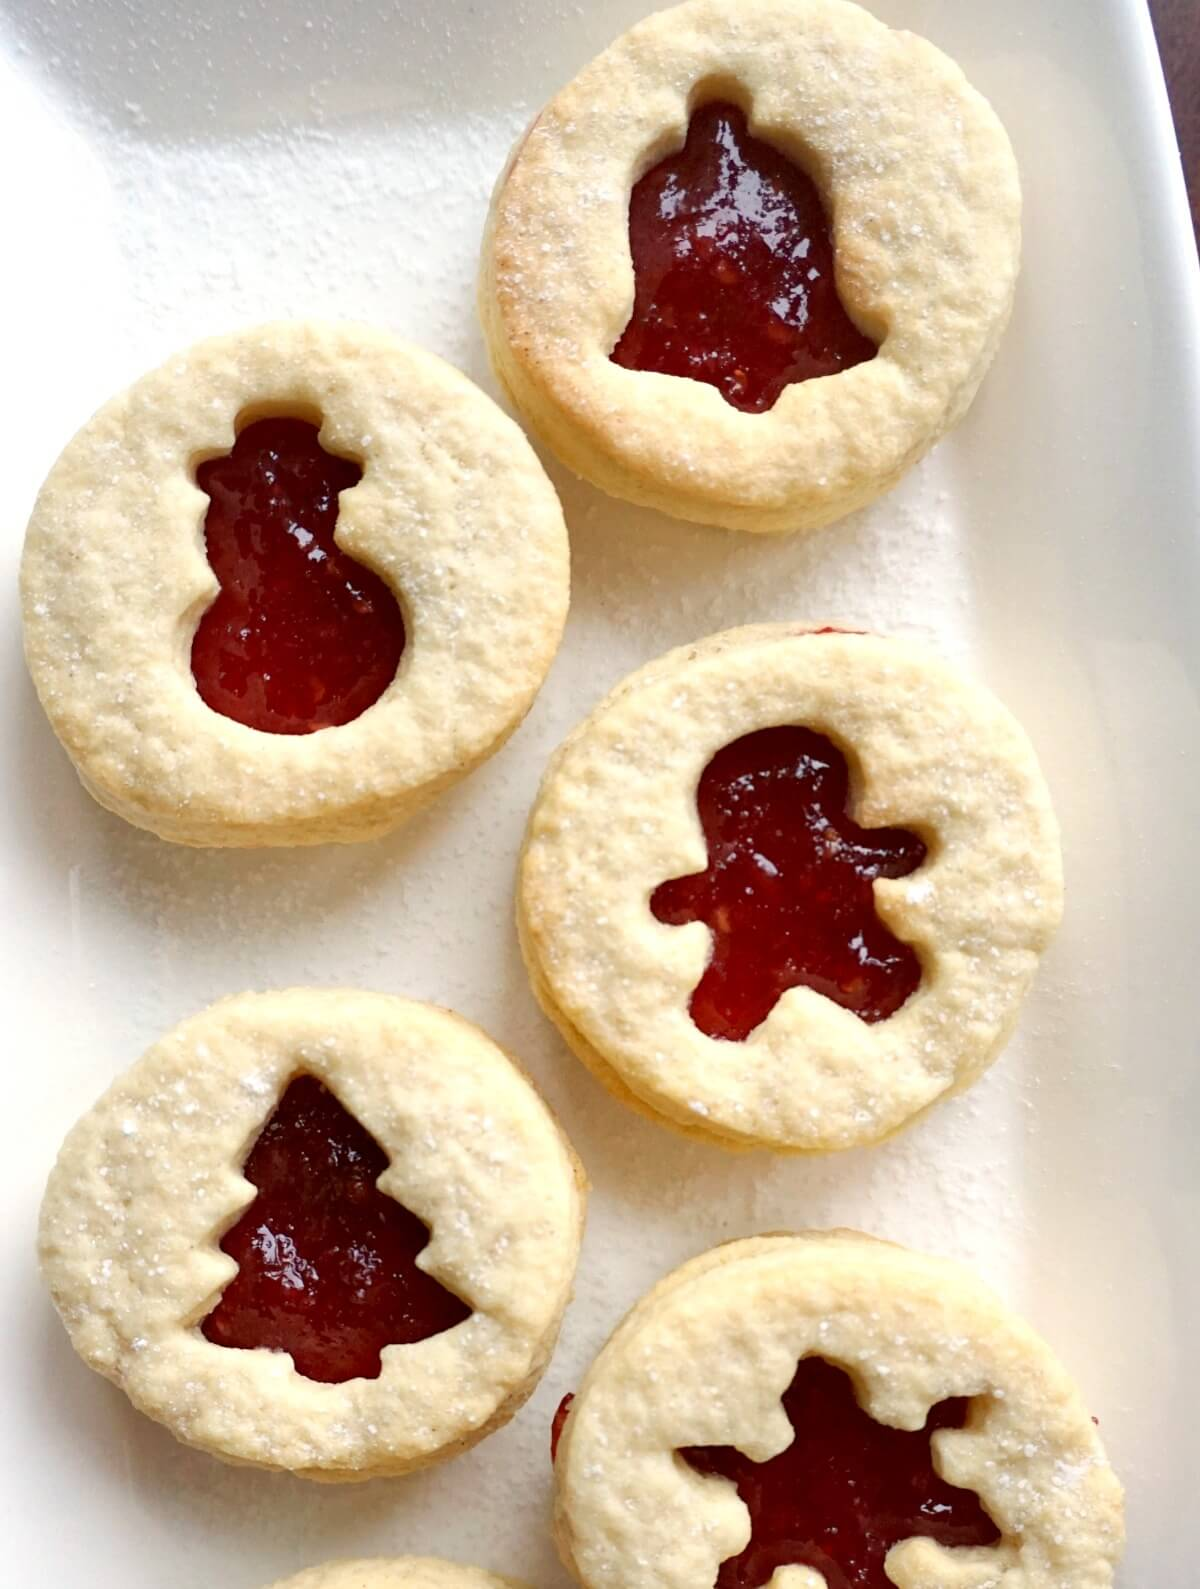 Close-up shoot of 5 linzer cookies on a white plate